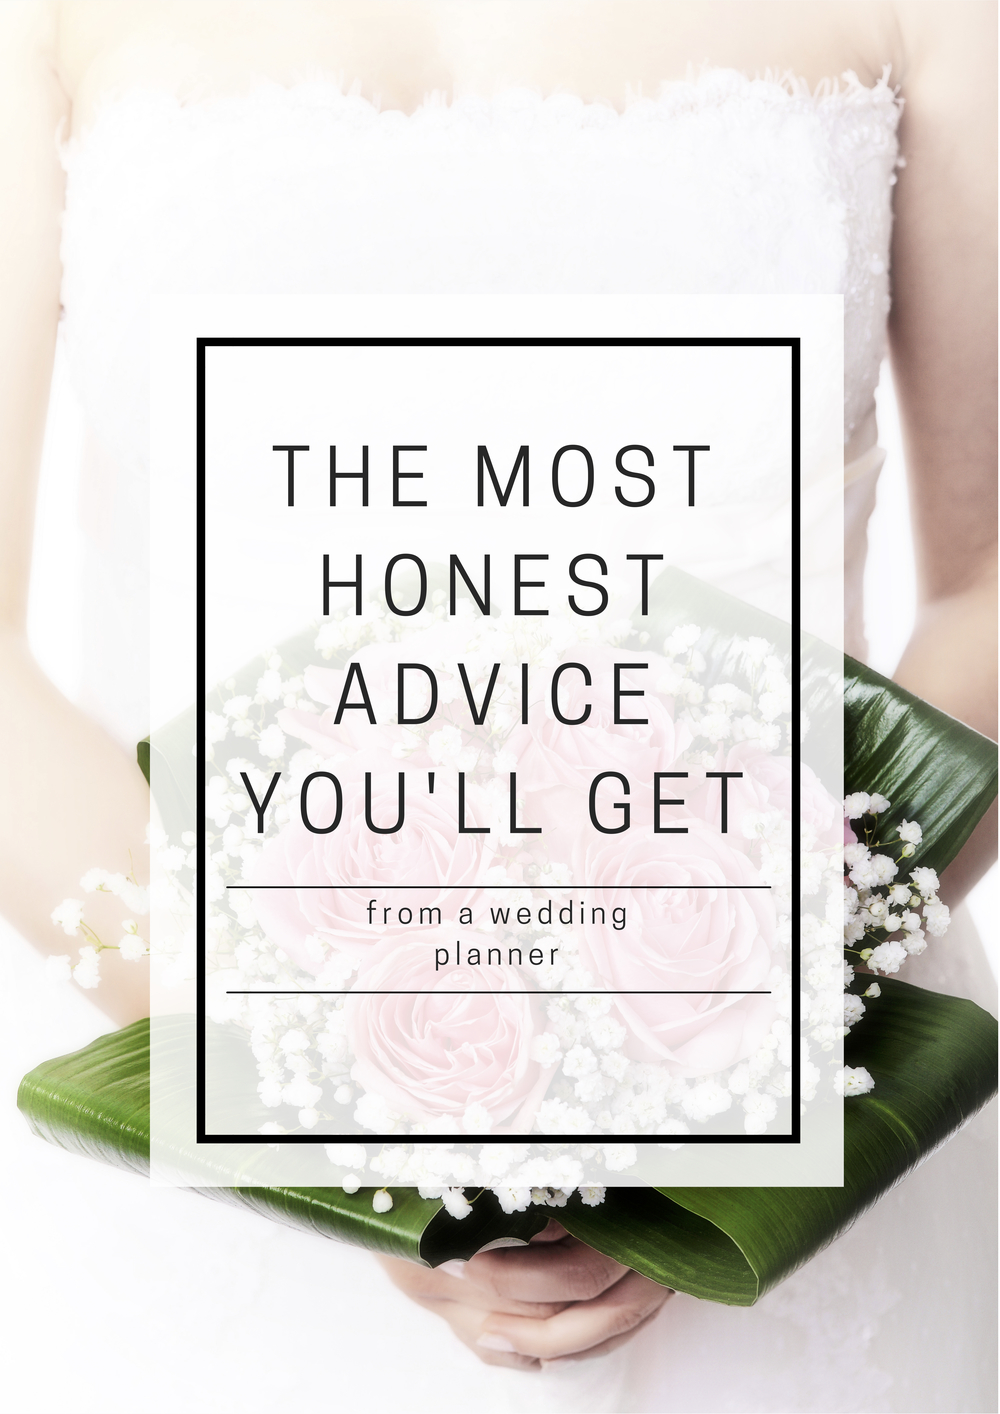 The most honest advice you'll get: from a wedding planner | Boxwood Avenue